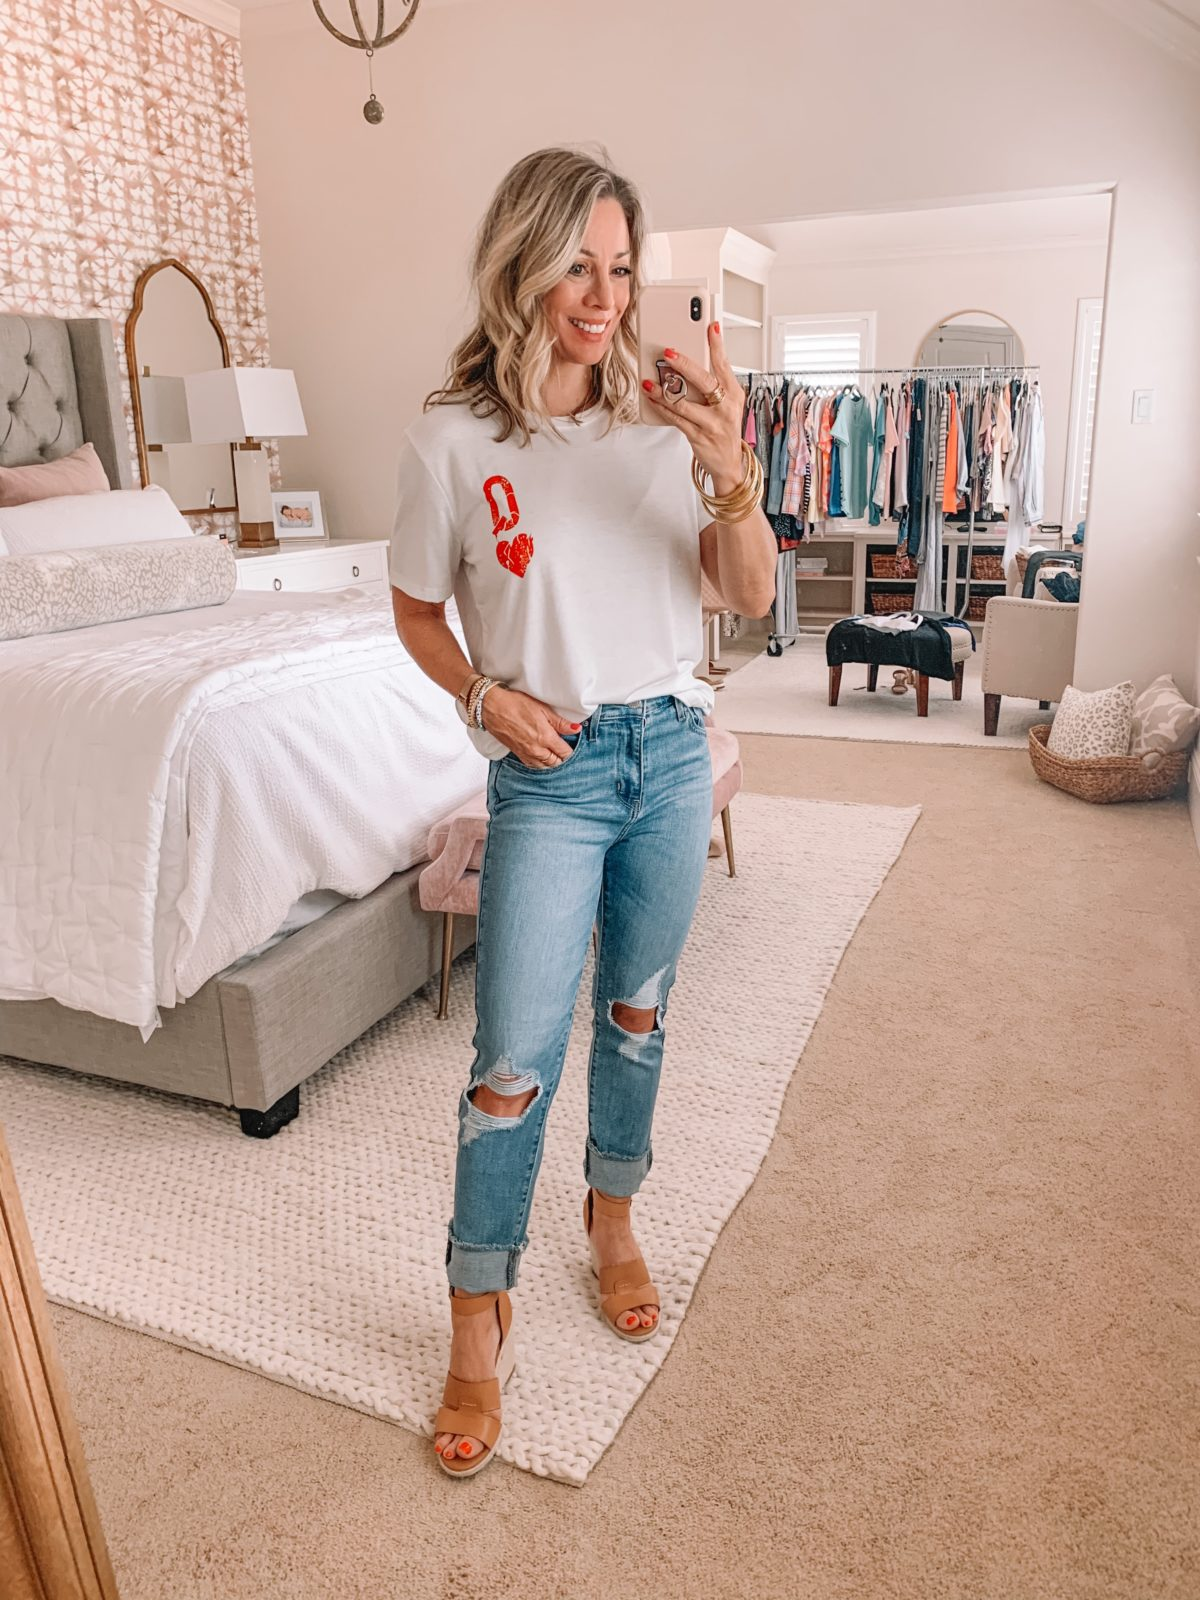 Amazon Fashion Finds, Queen of Hearts Tee, Distressed Jeans, Wedges